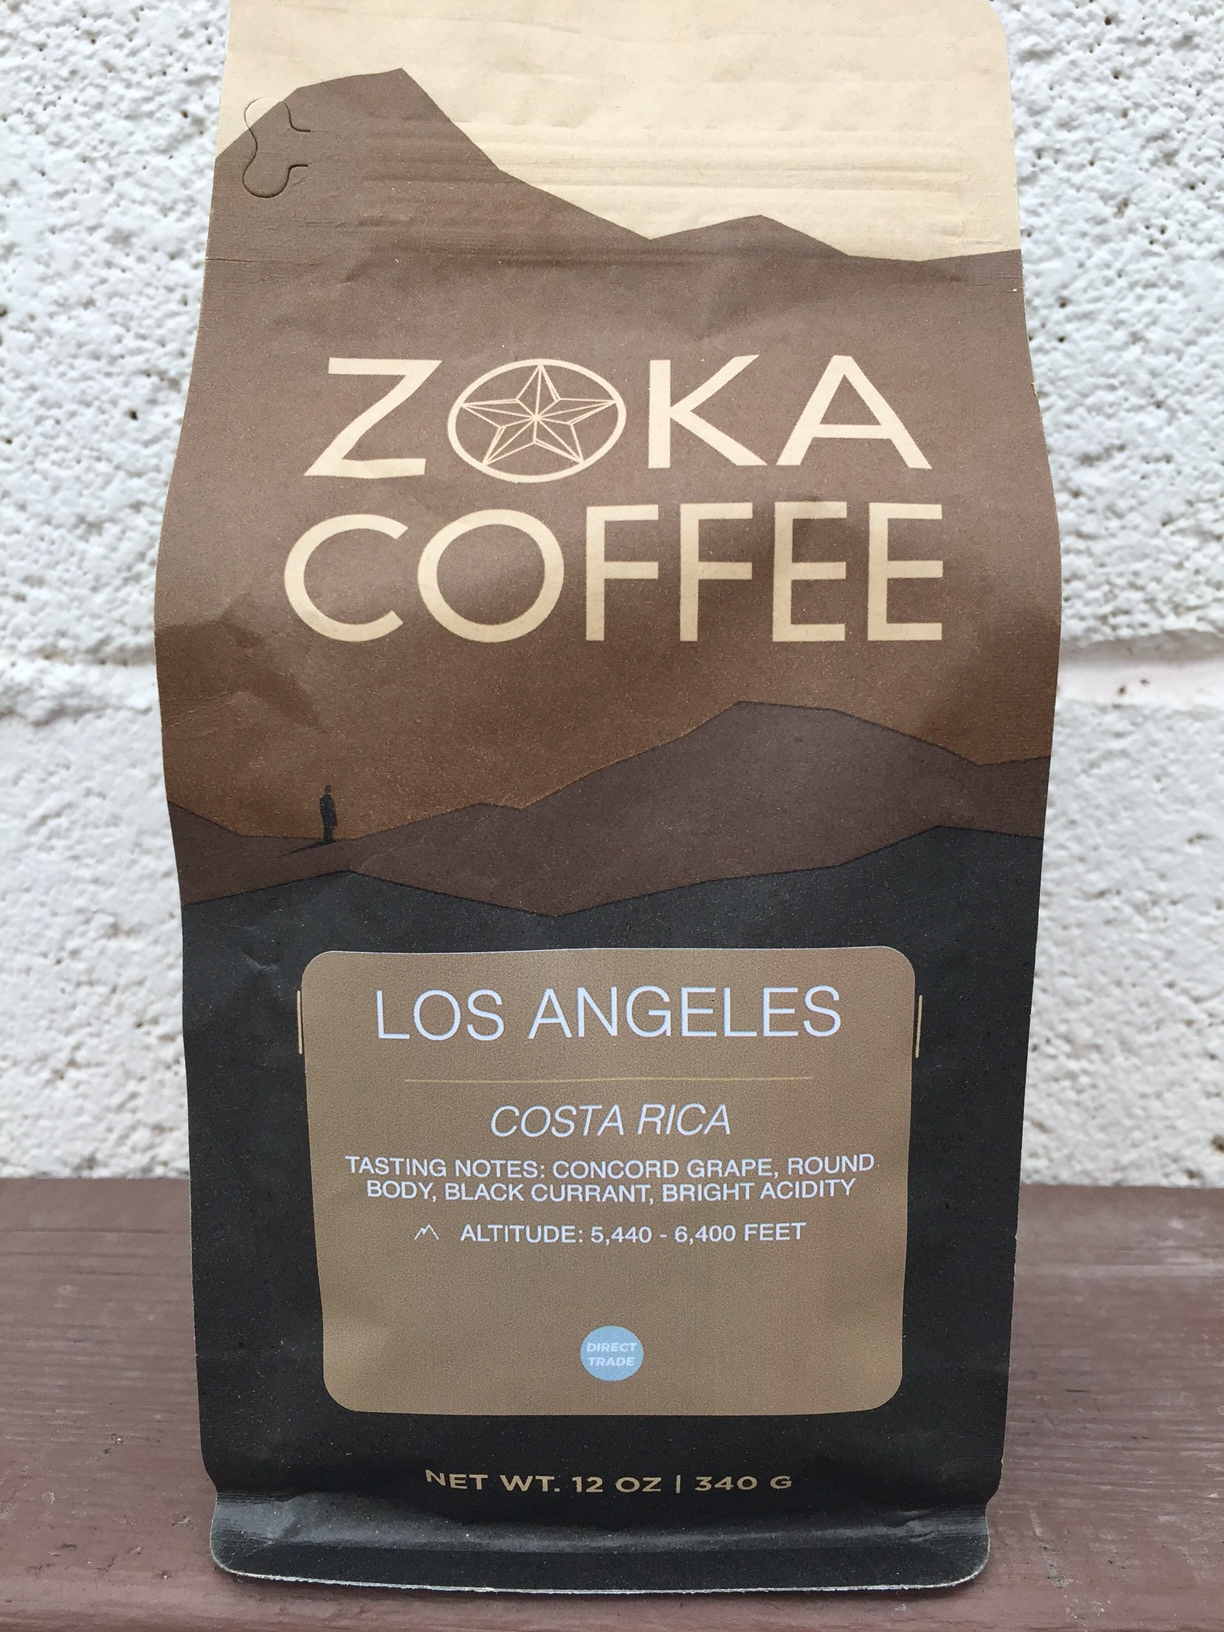 Zoka Coffee Costa Rica